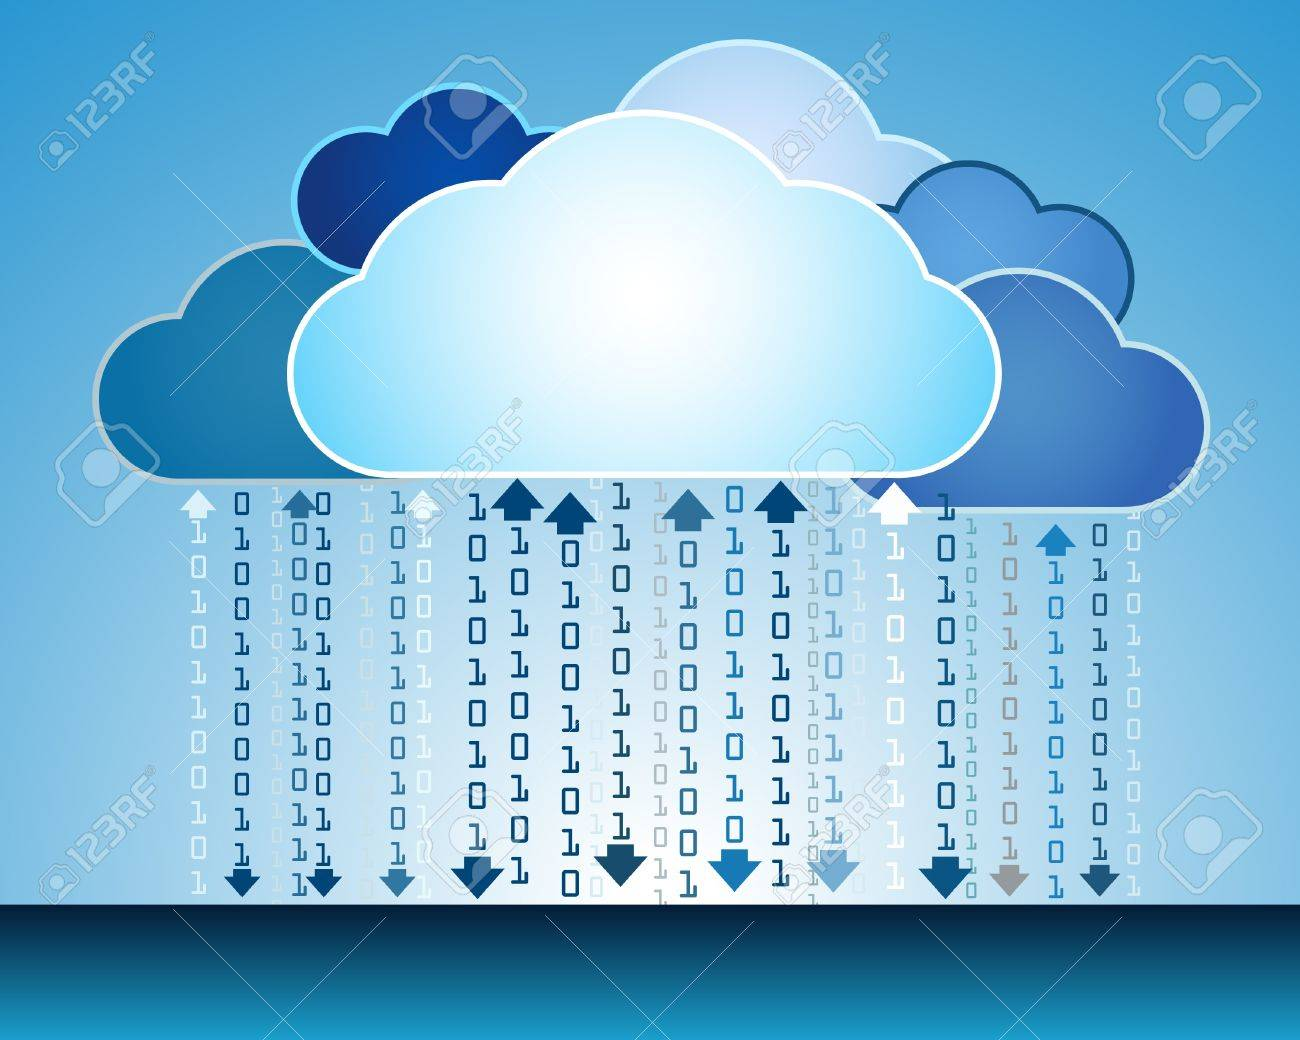 Abstract data cloud illustration Stock Vector - 14559606